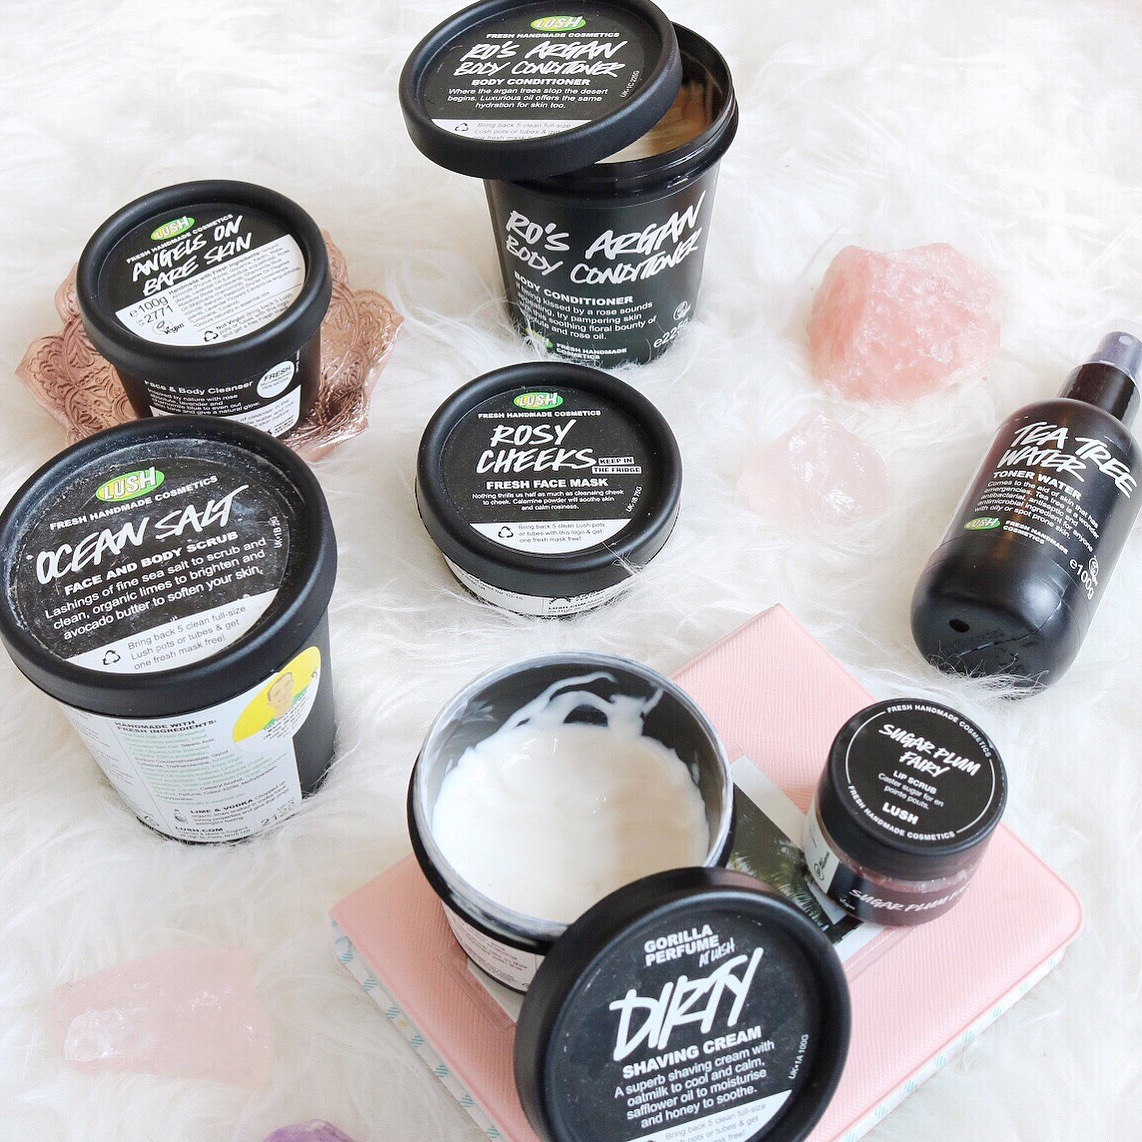 Lush products for sensitive skin